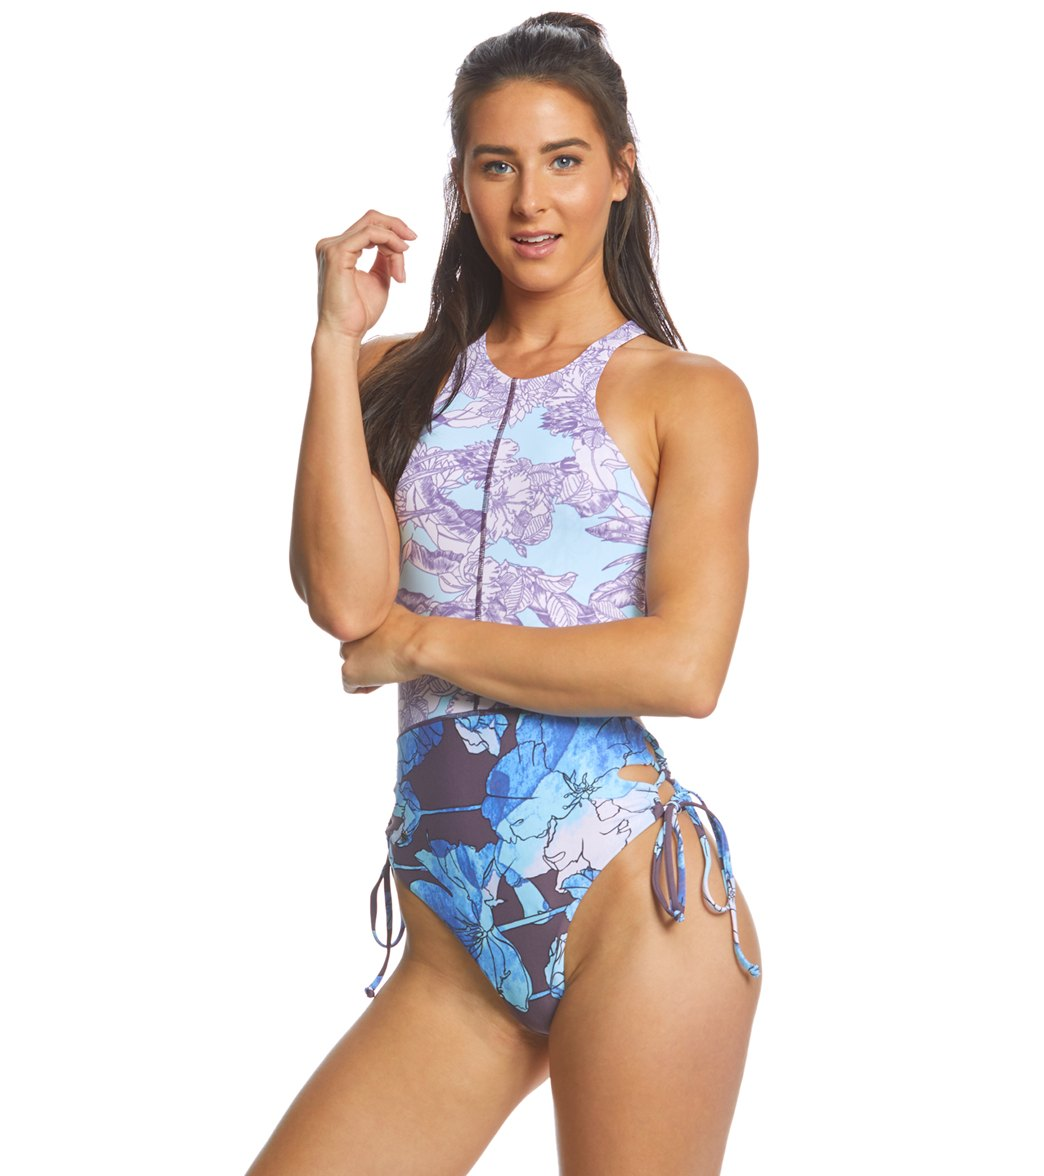 d393d7488a671 Maaji Santa Catalina One Piece Swimsuit at SwimOutlet.com - Free Shipping